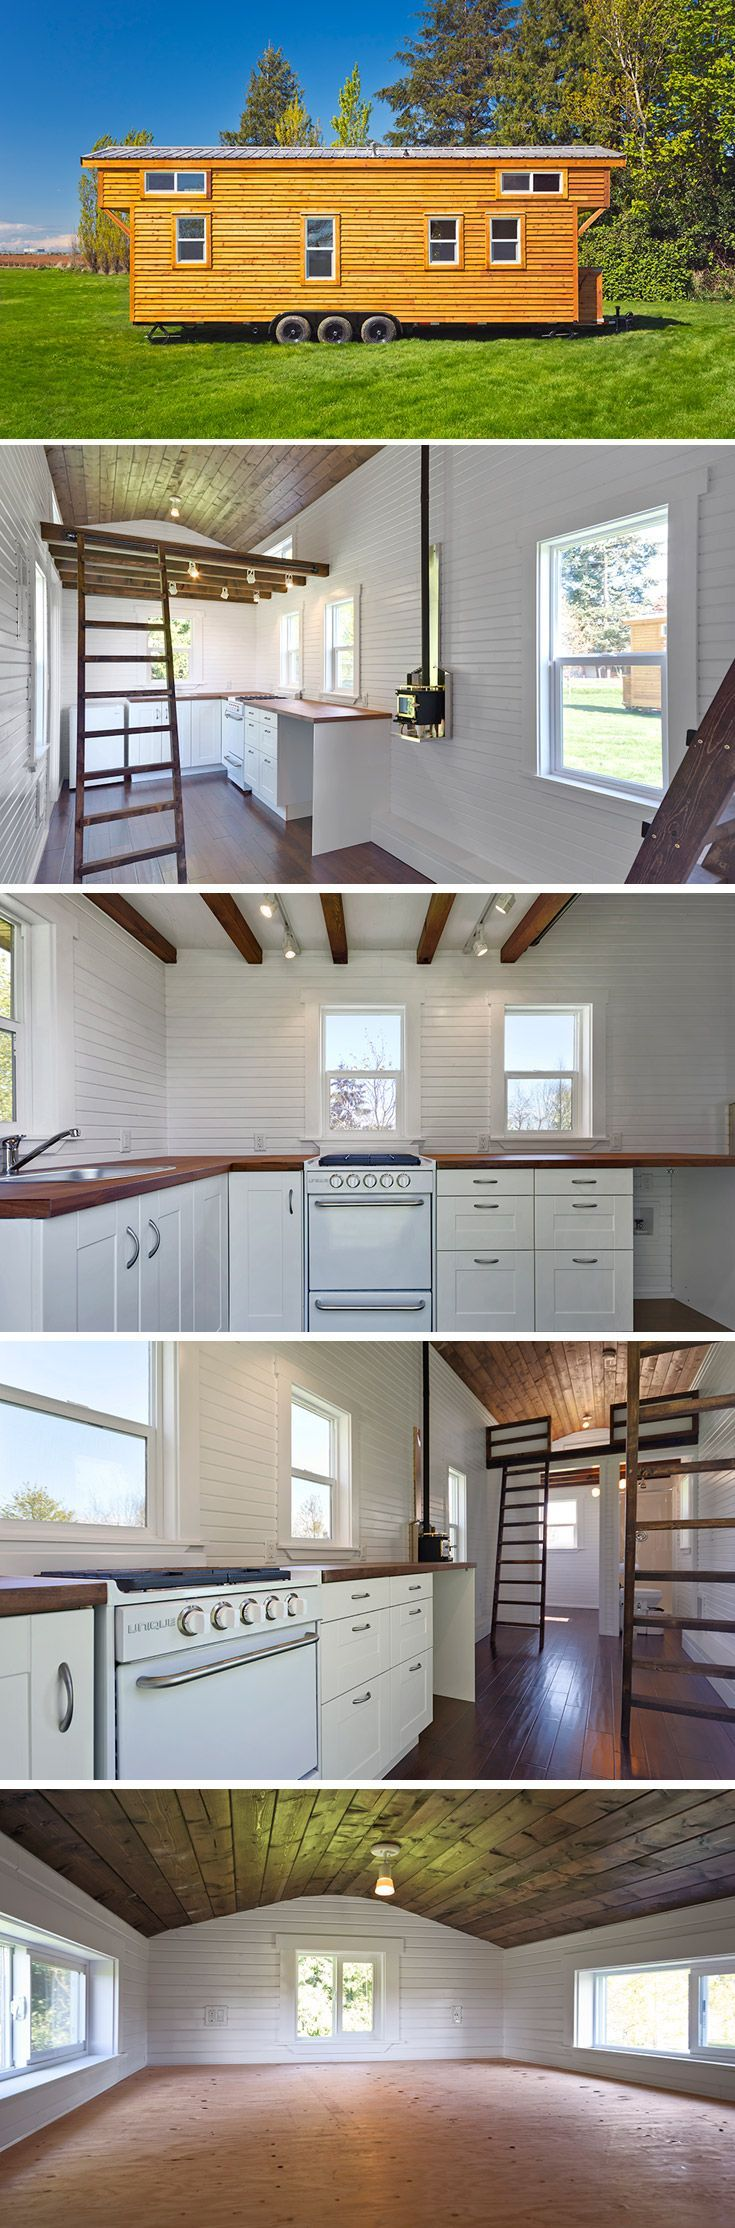 largest tiny house. The Loft Edition is Mint Tiny Homes  largest tiny house with trailers available from 24 4462 best House images on Pinterest Small houses